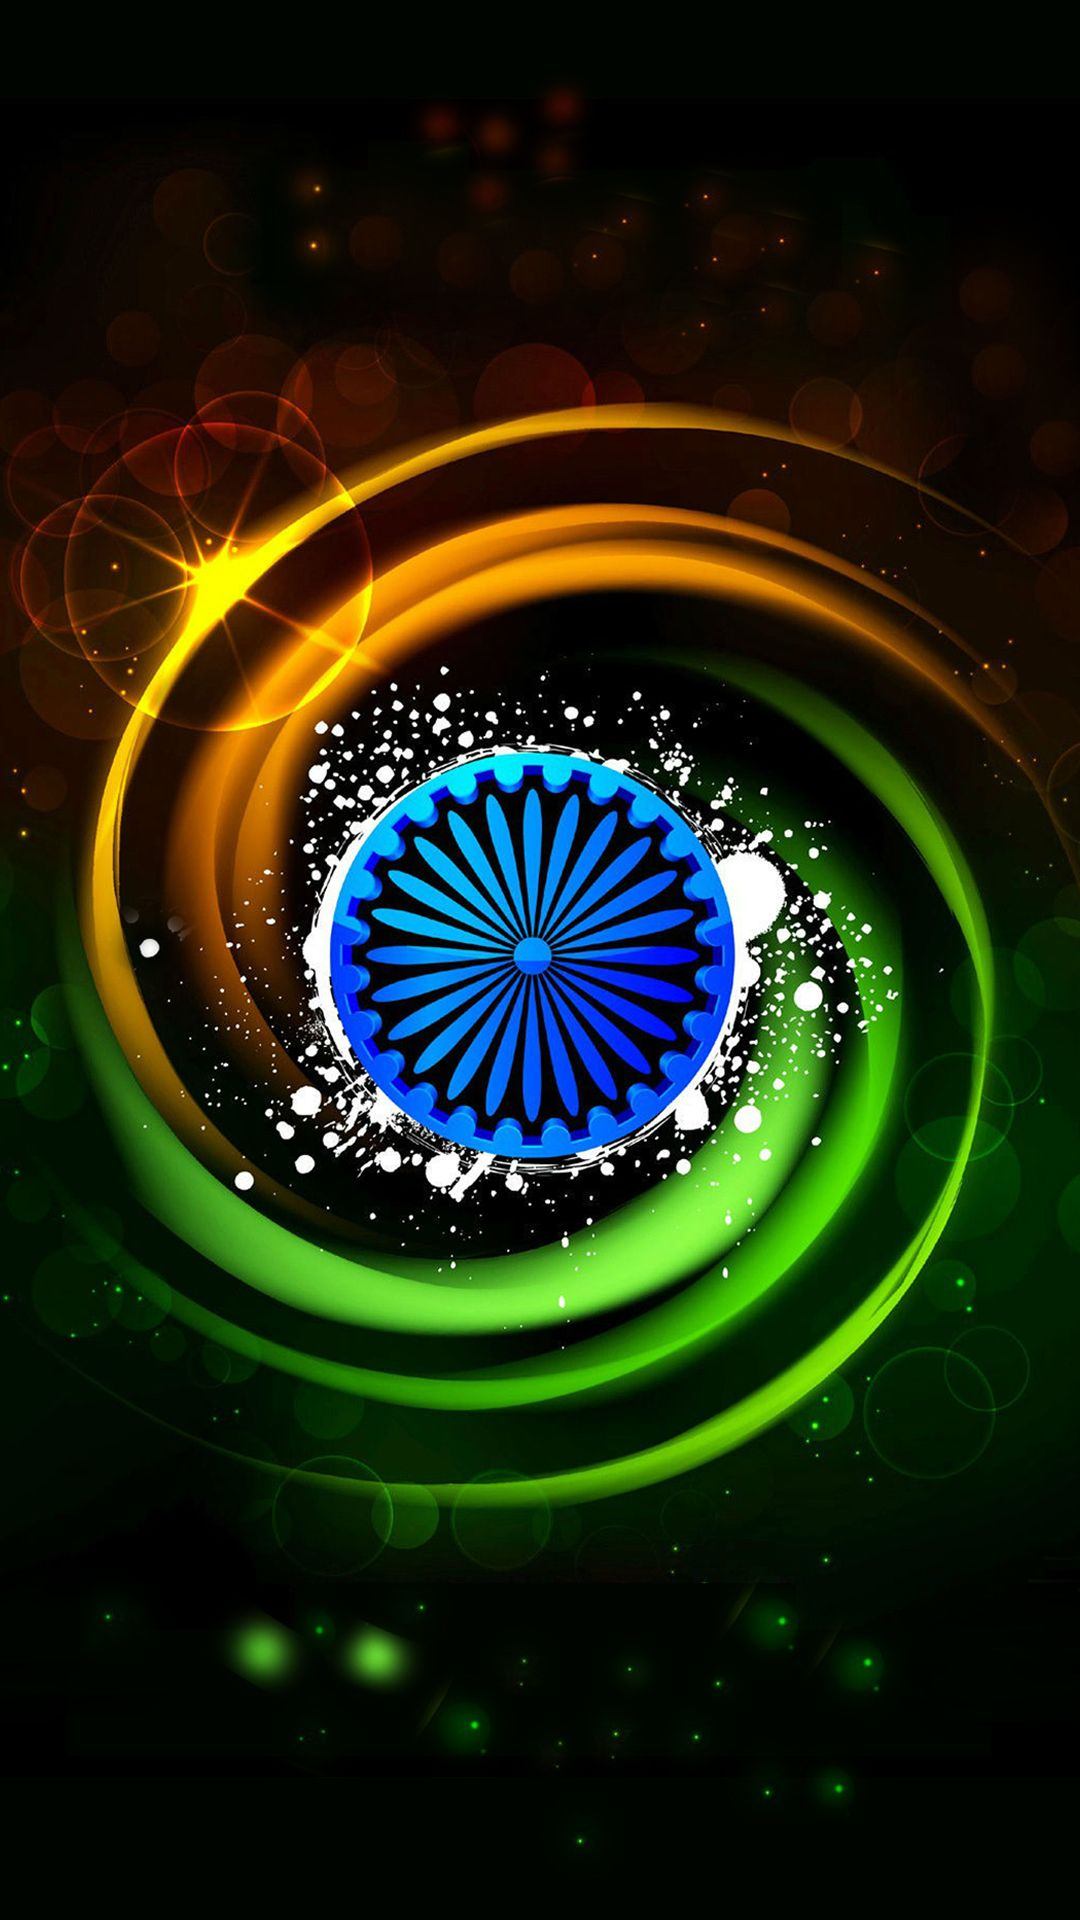 India Flag For Mobile Phone Wallpaper 08 Of 17 Tiranga In 3d